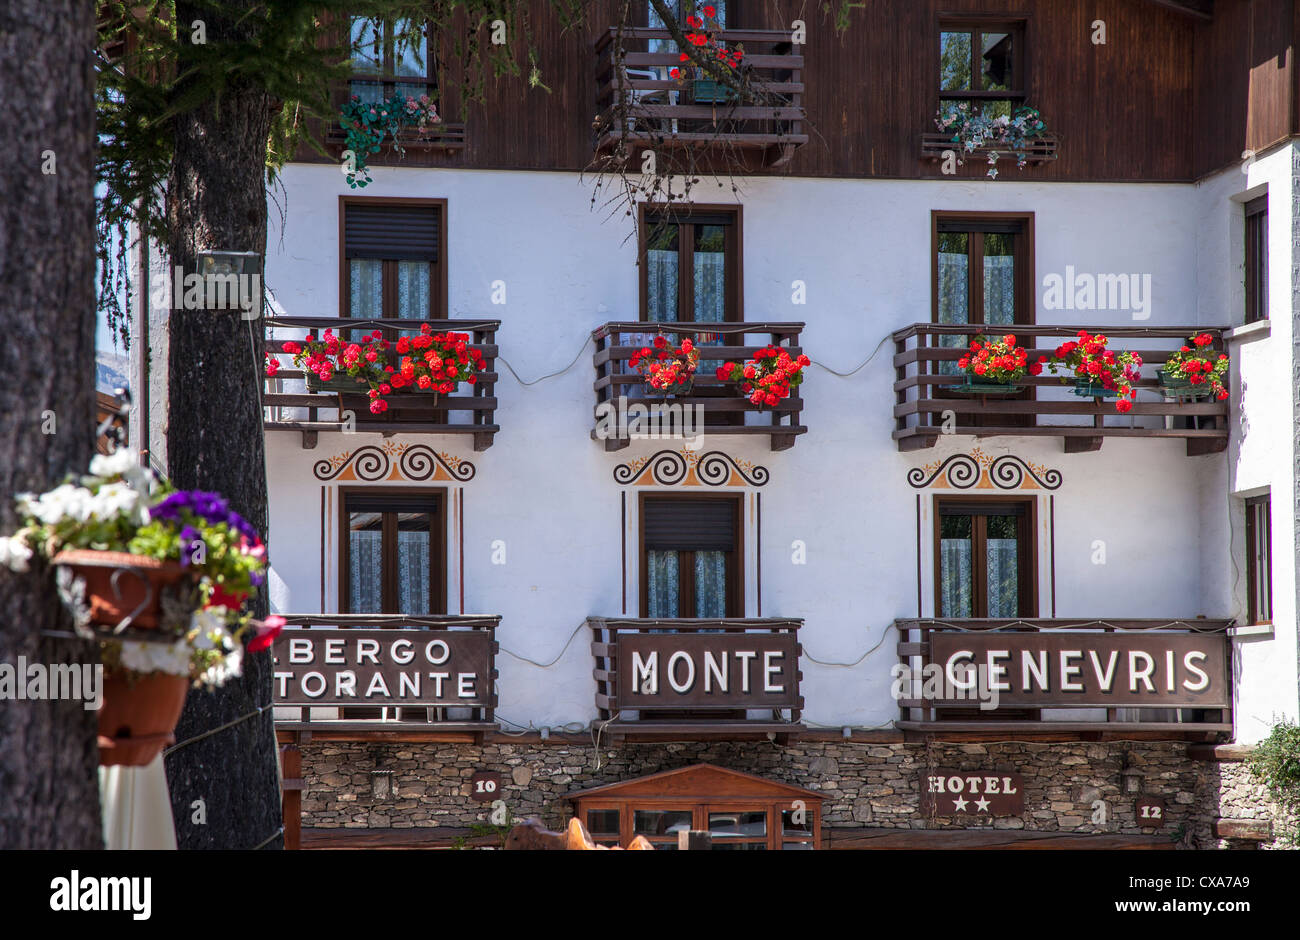 Hotel in Italy with floral balconies, Sauze d'Oulx, Italy - Stock Image